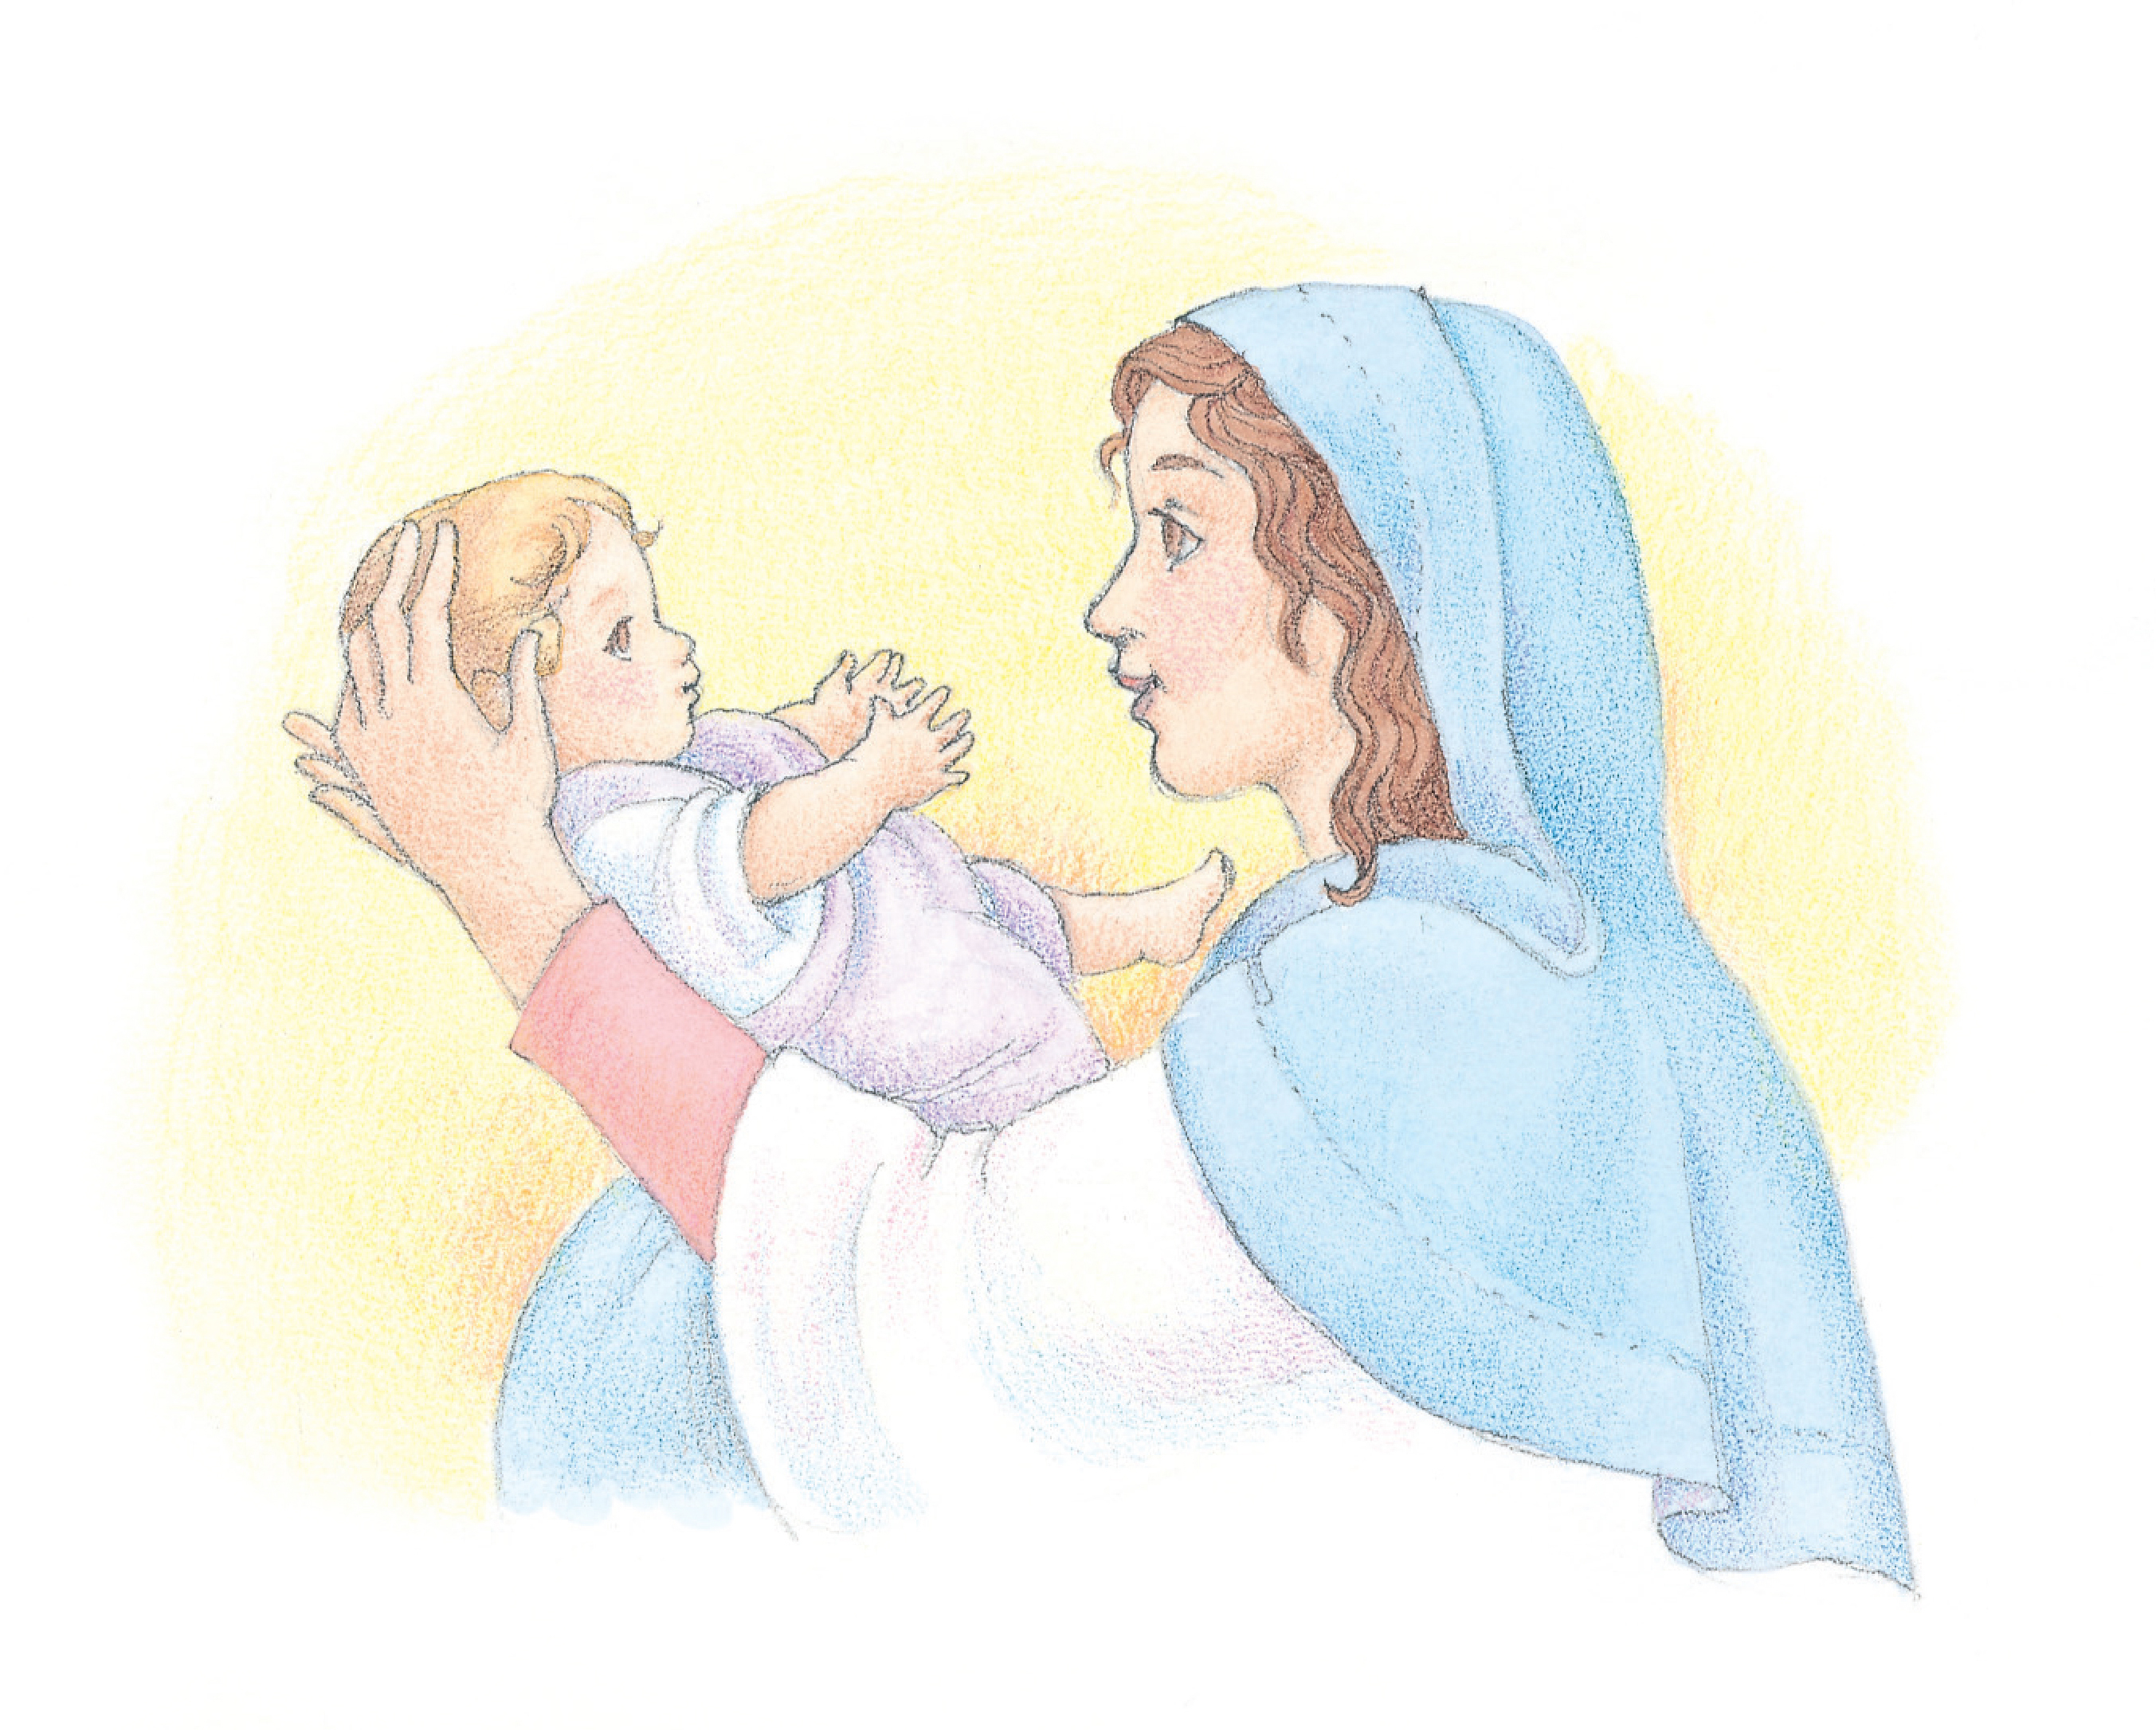 """Mary holding the baby Jesus. From the Children's Songbook, page 44, """"Mary's Lullaby""""; watercolor illustration by Phyllis Luch."""